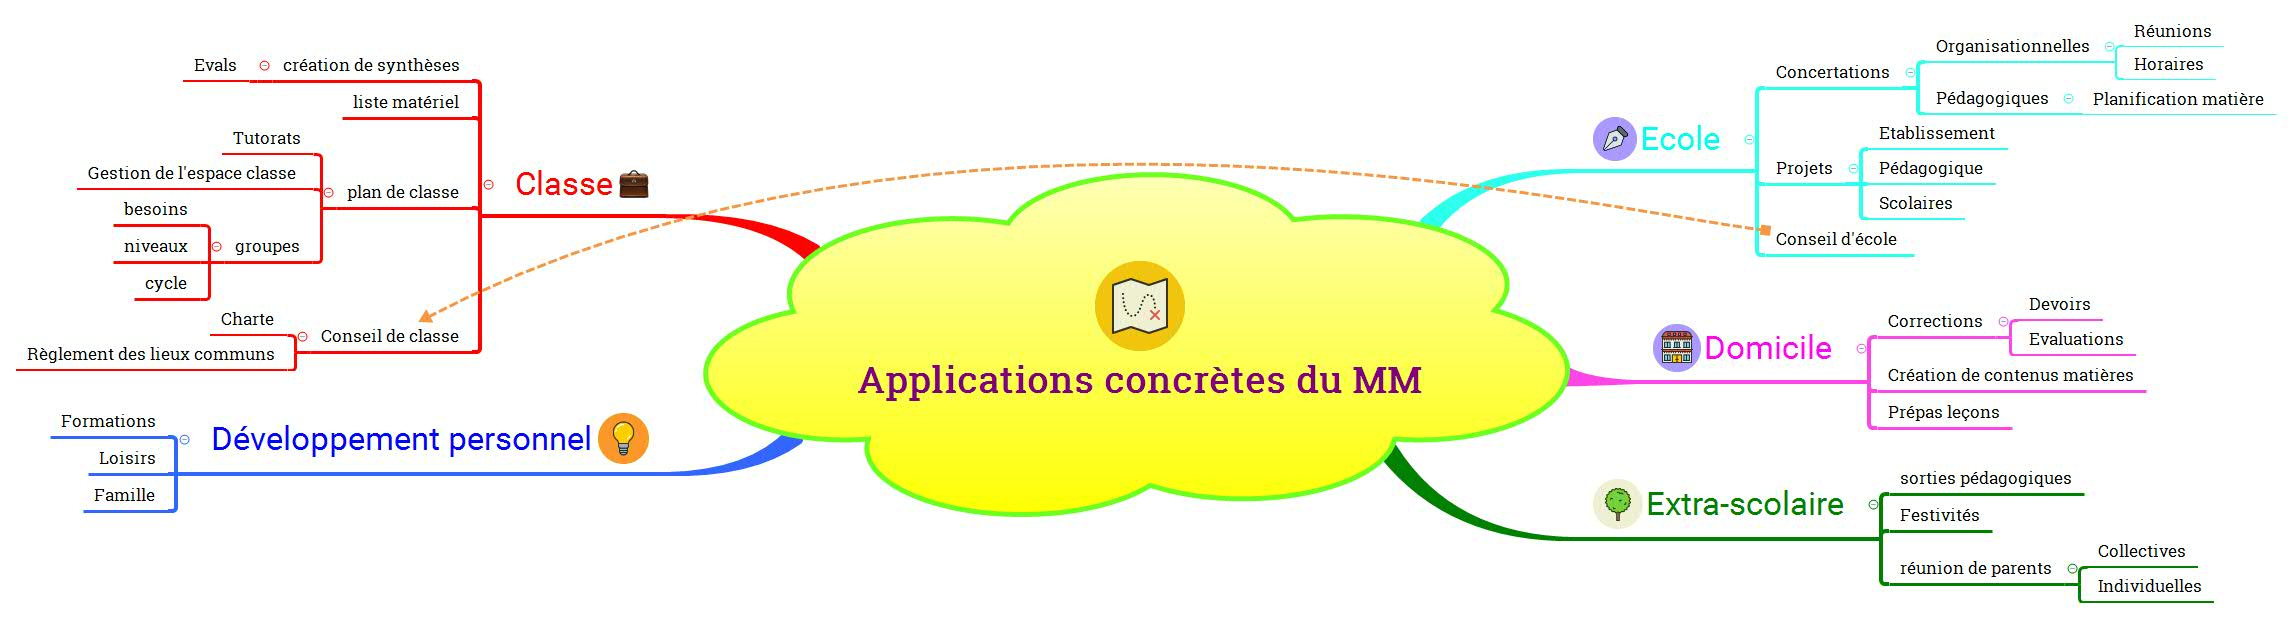 Applications concrètes du MM